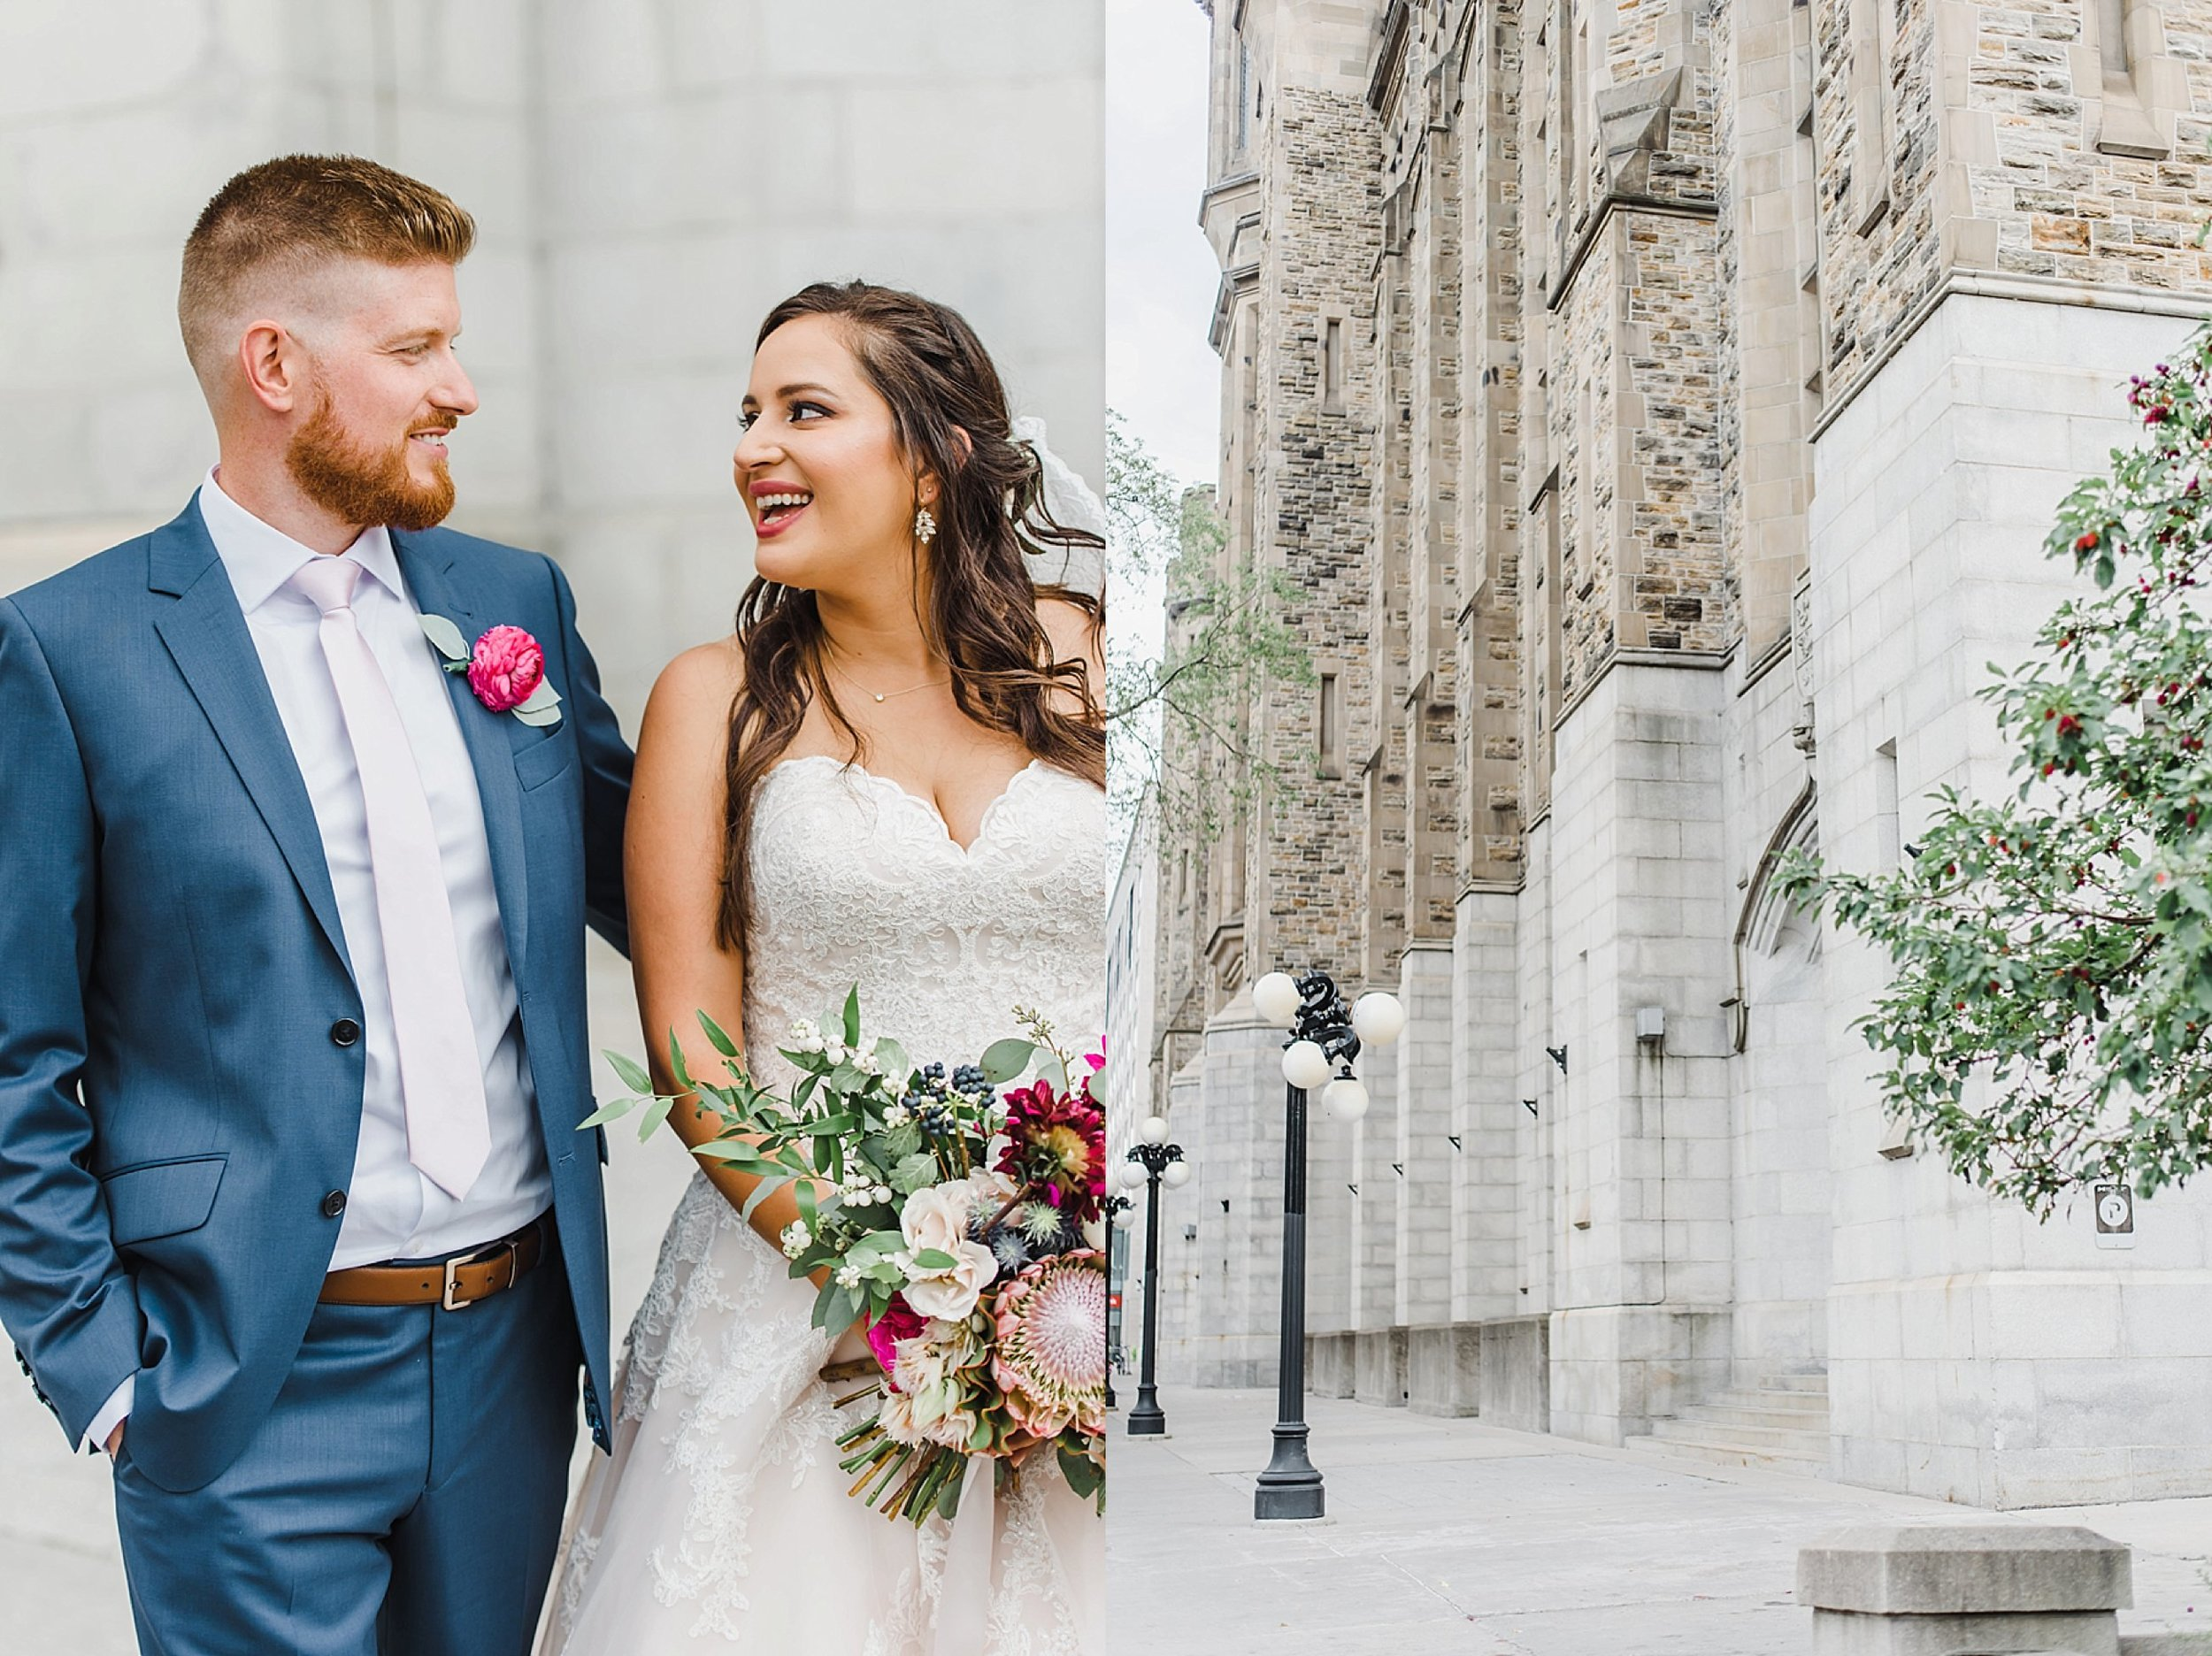 light airy indie fine art ottawa wedding photographer | Ali and Batoul Photography_1645.jpg